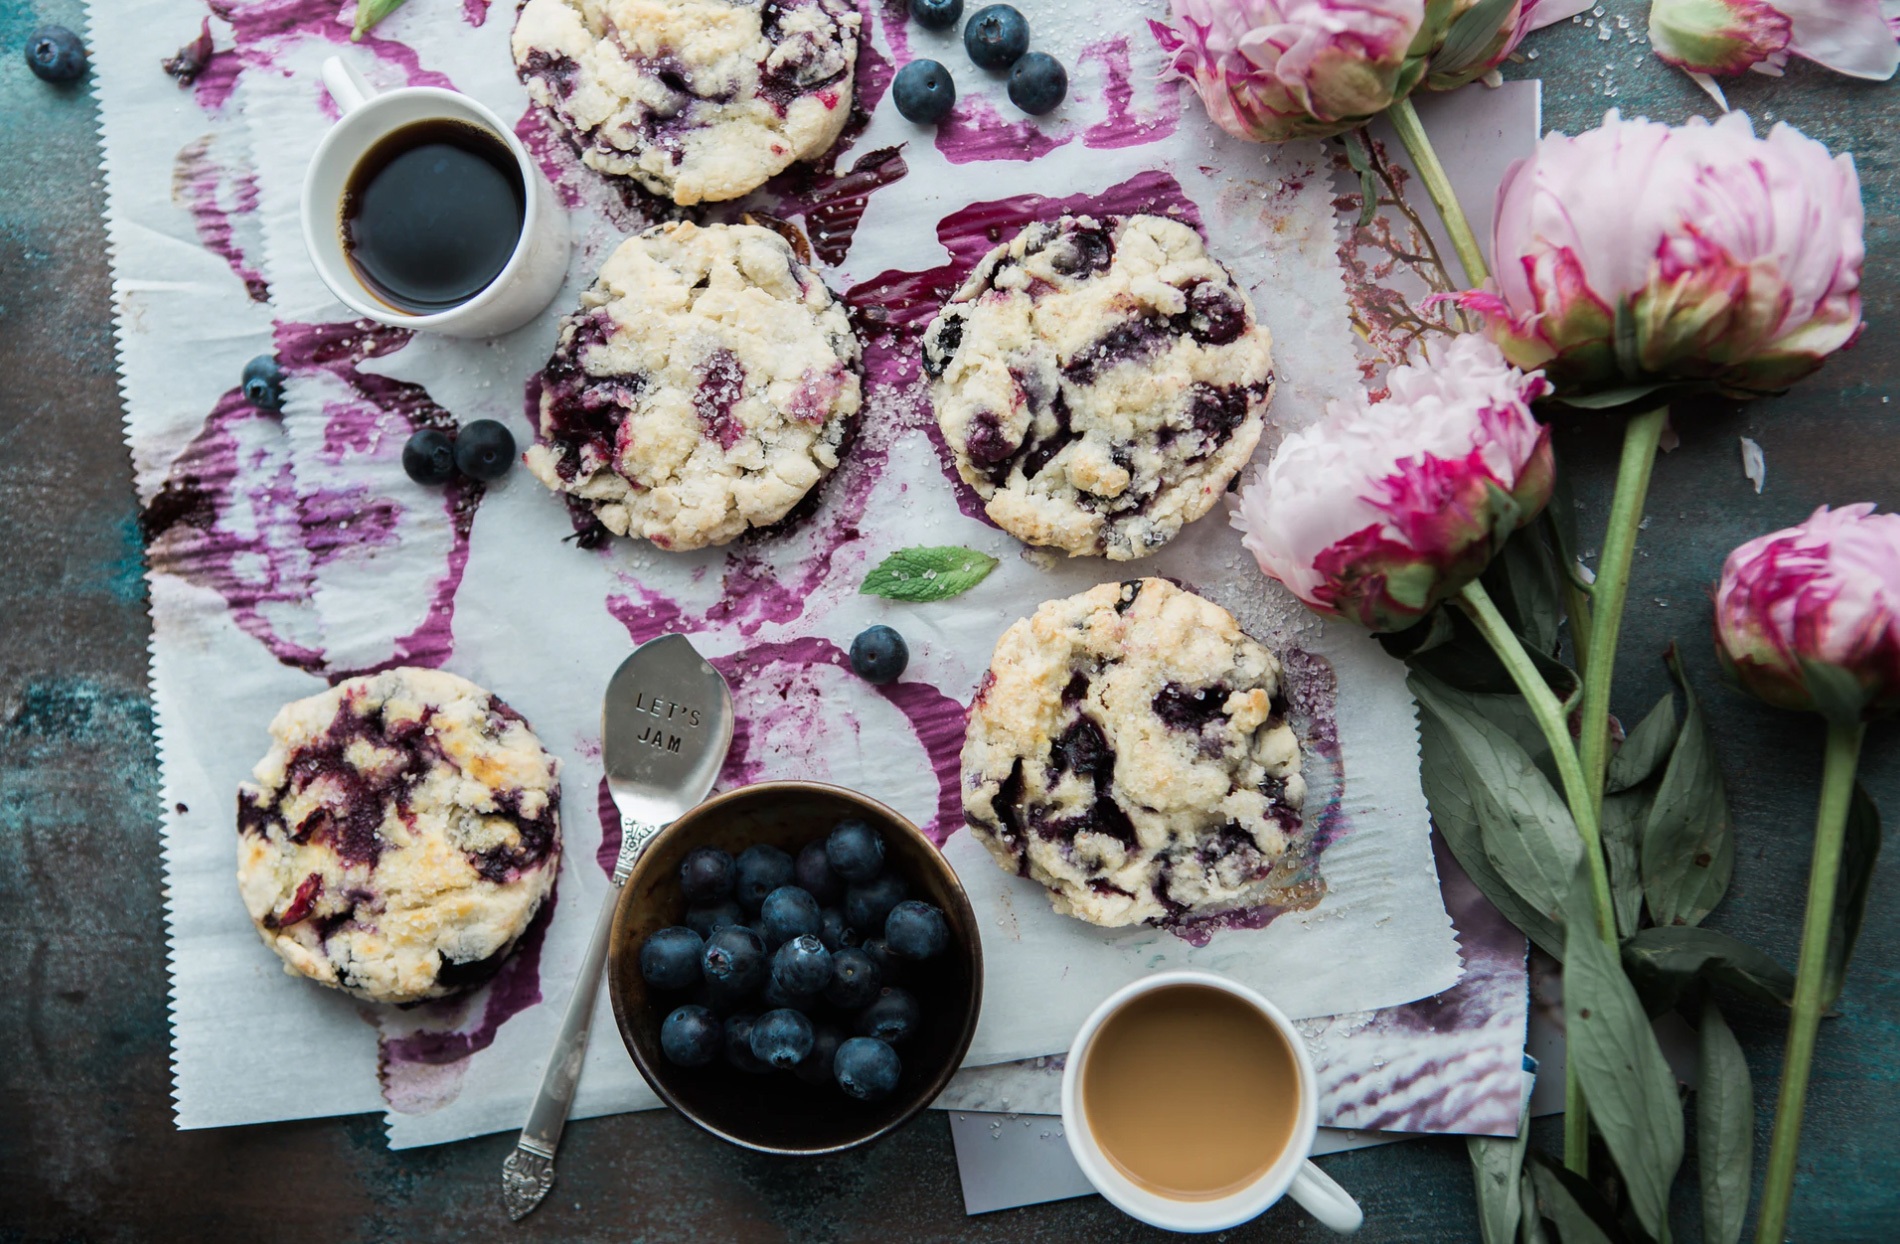 A plate of cranberry and blueberry cookies with peonies